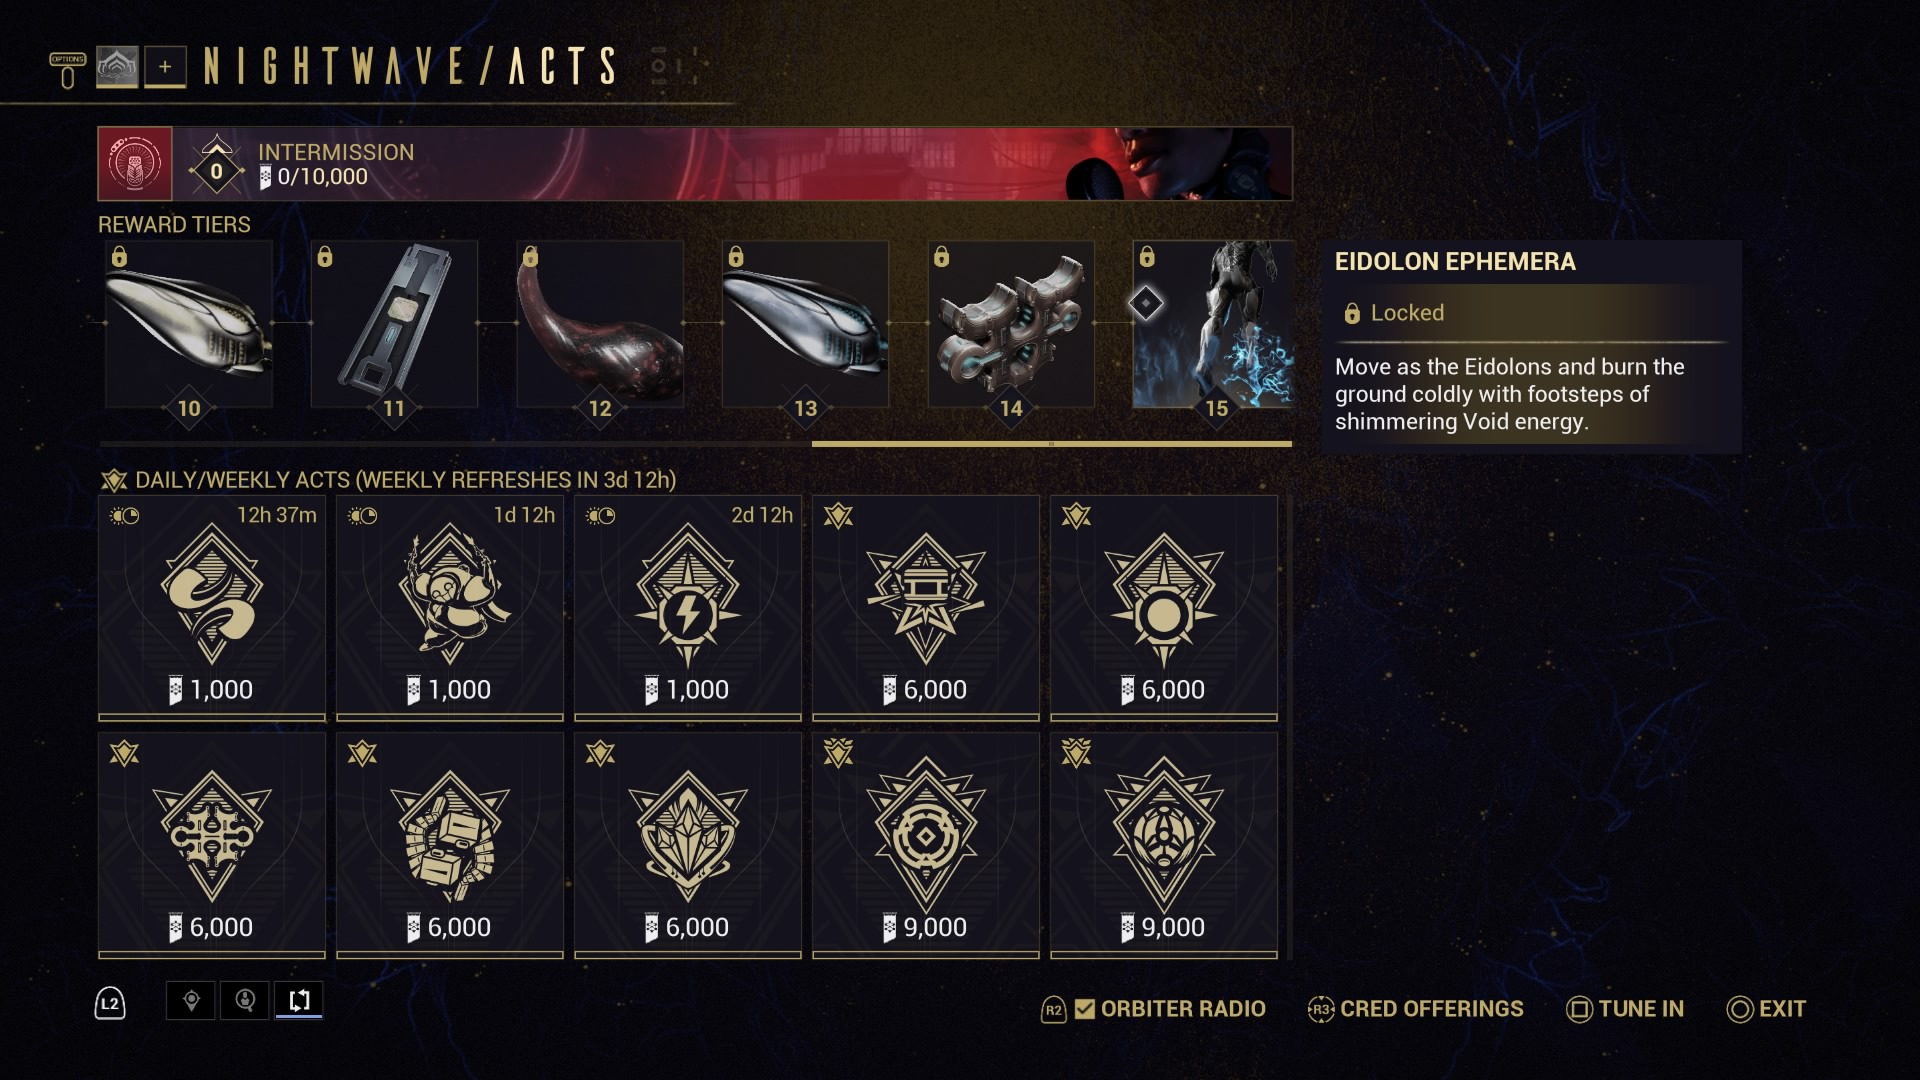 Warframe Nightwave: Intermission gives Tenno another chance at missed Series 1 rewards - VG247